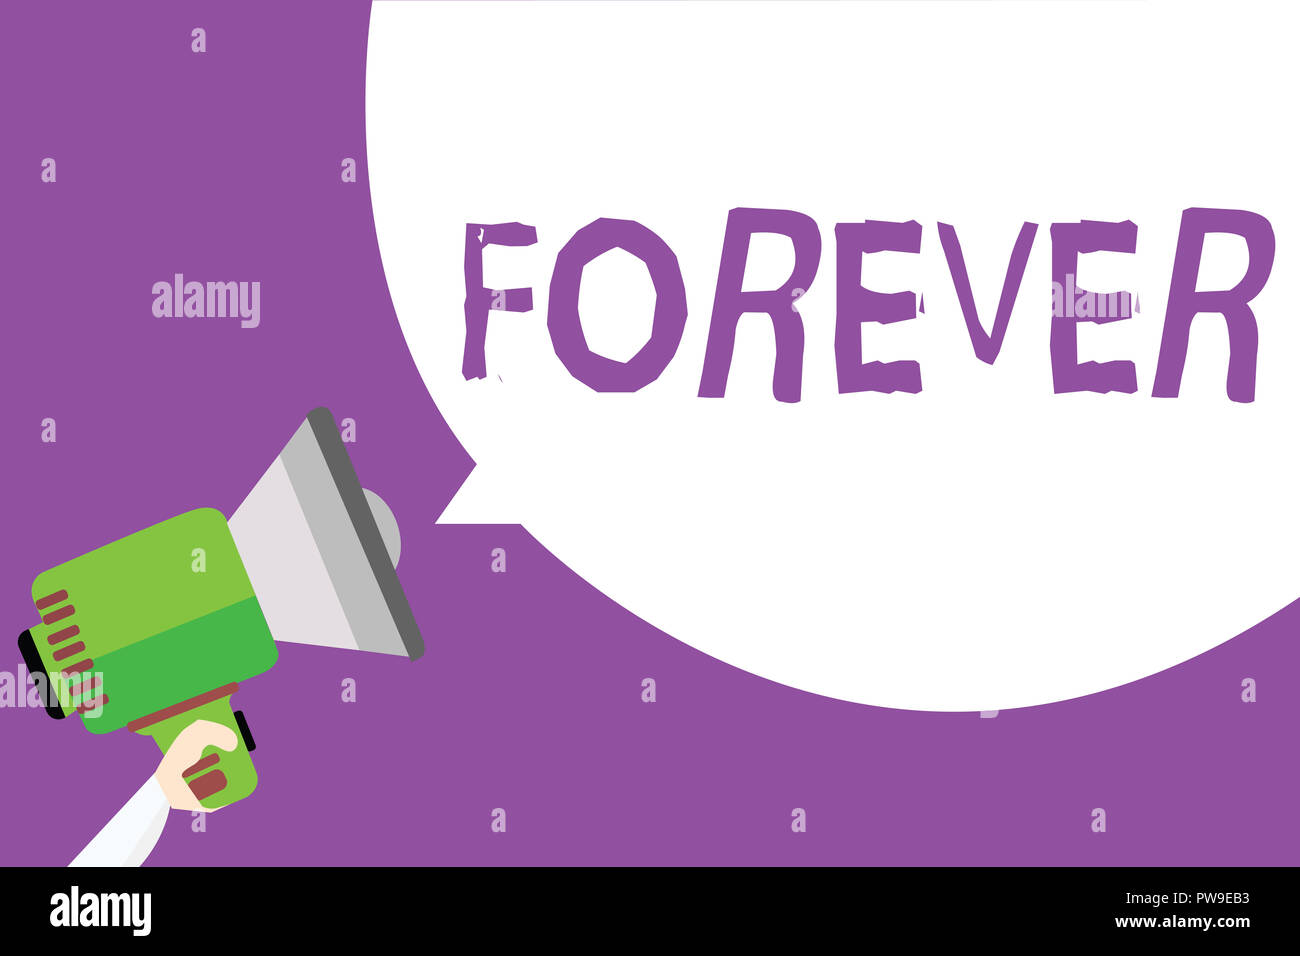 Word writing text Forever. Business concept for Everlasting Peranalysisent Always for future time endless Eternal Man holding megaphone loudspeaker sp - Stock Image